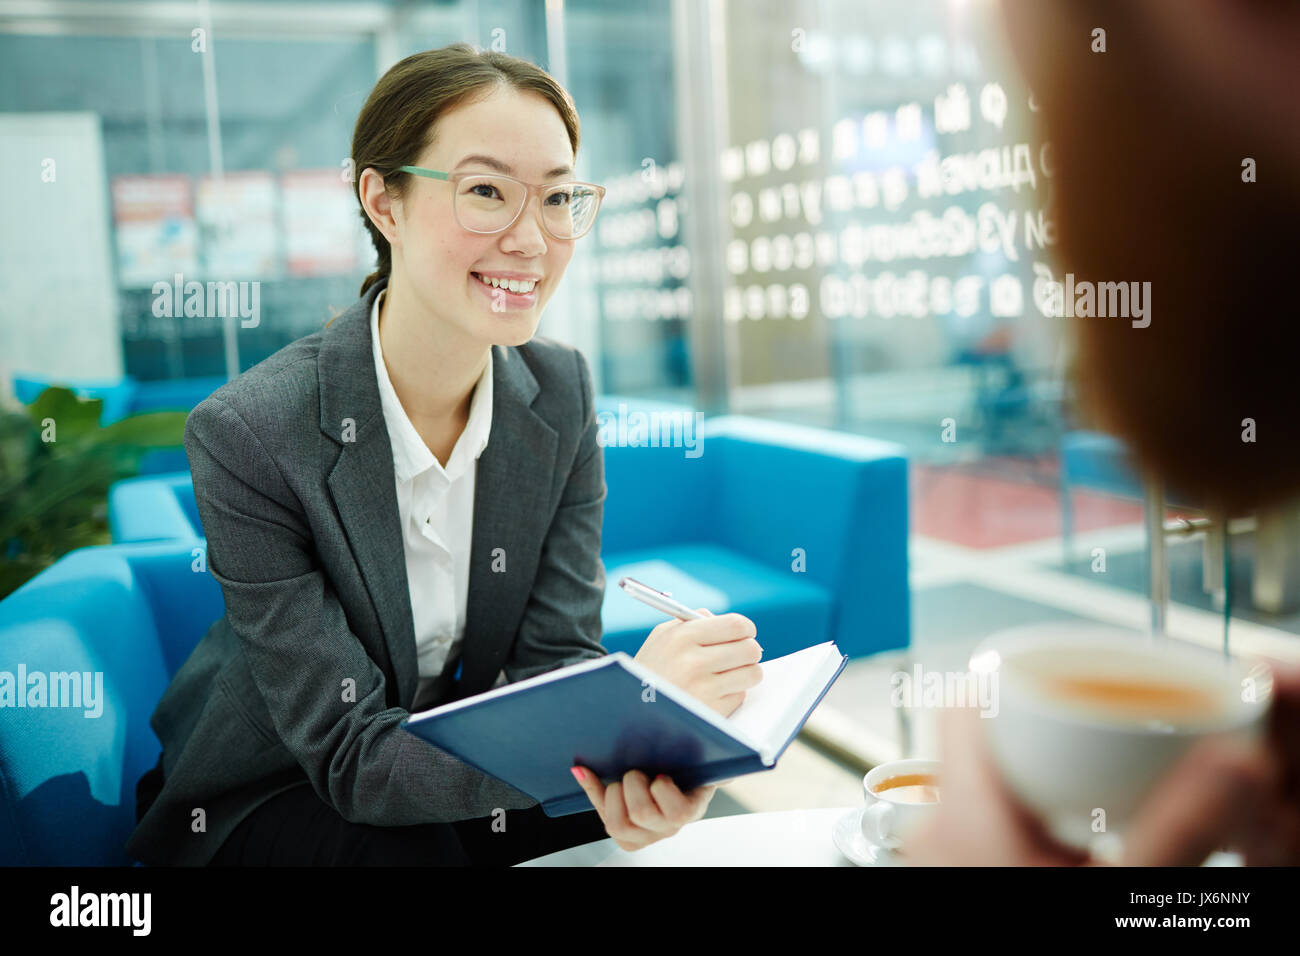 Planning at meeting - Stock Image